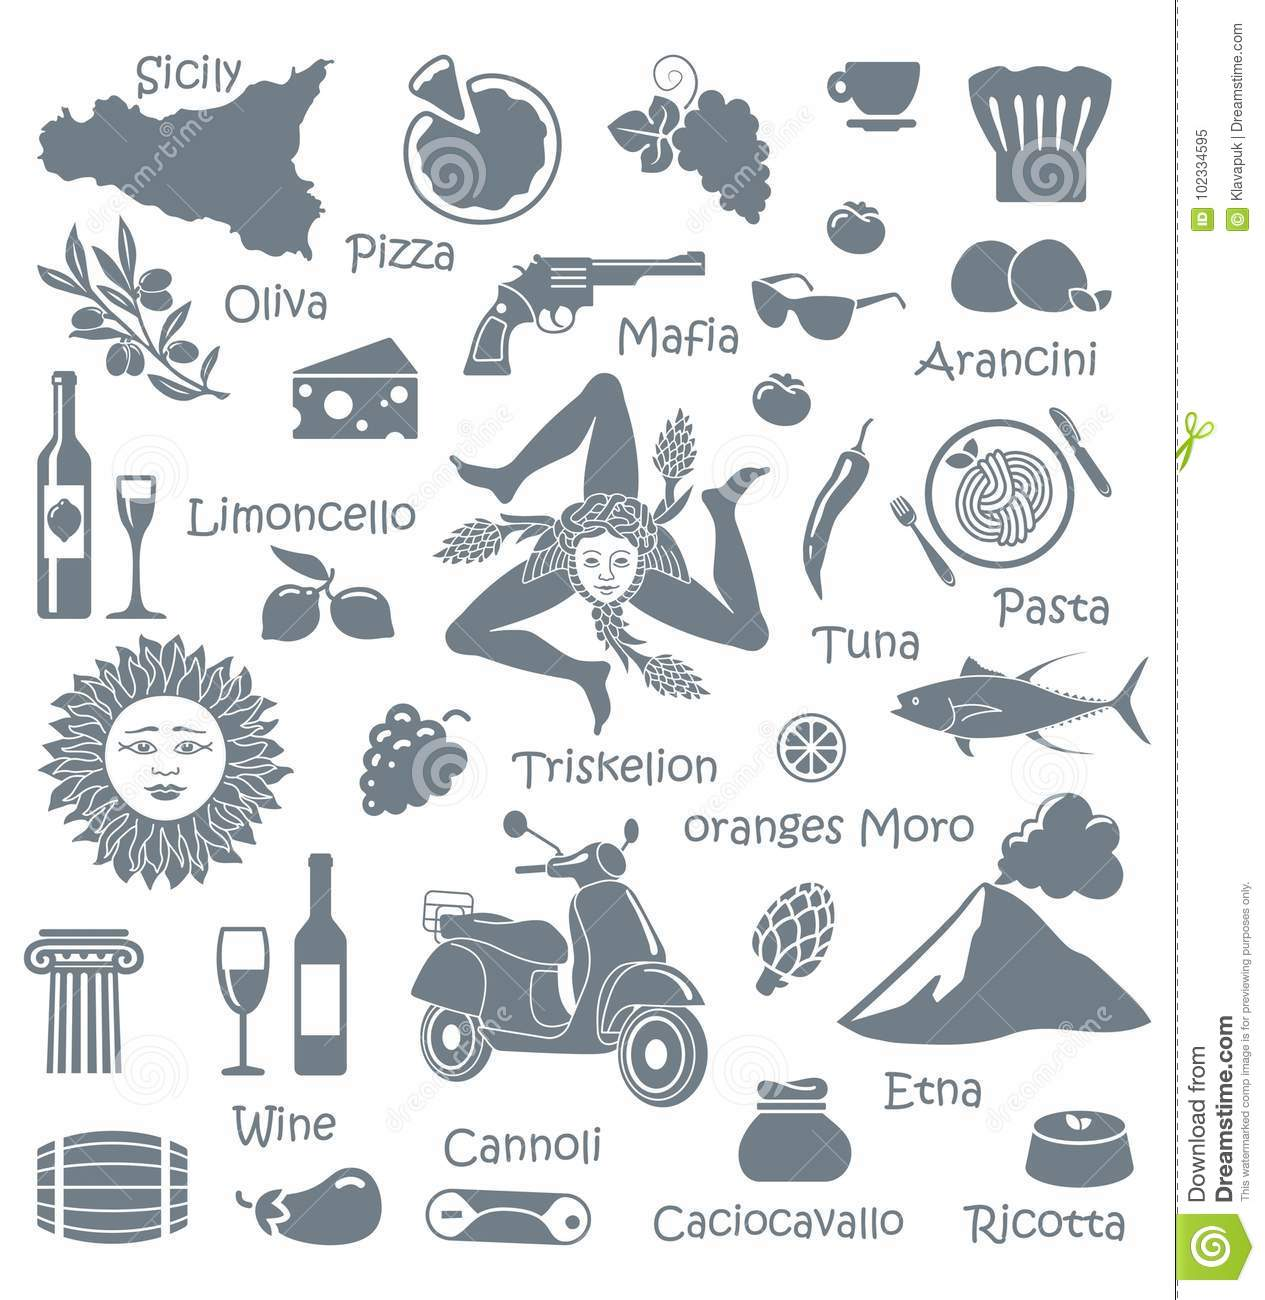 Set Of Icons On A Theme Of Sicily Stock Vector Illustration Of